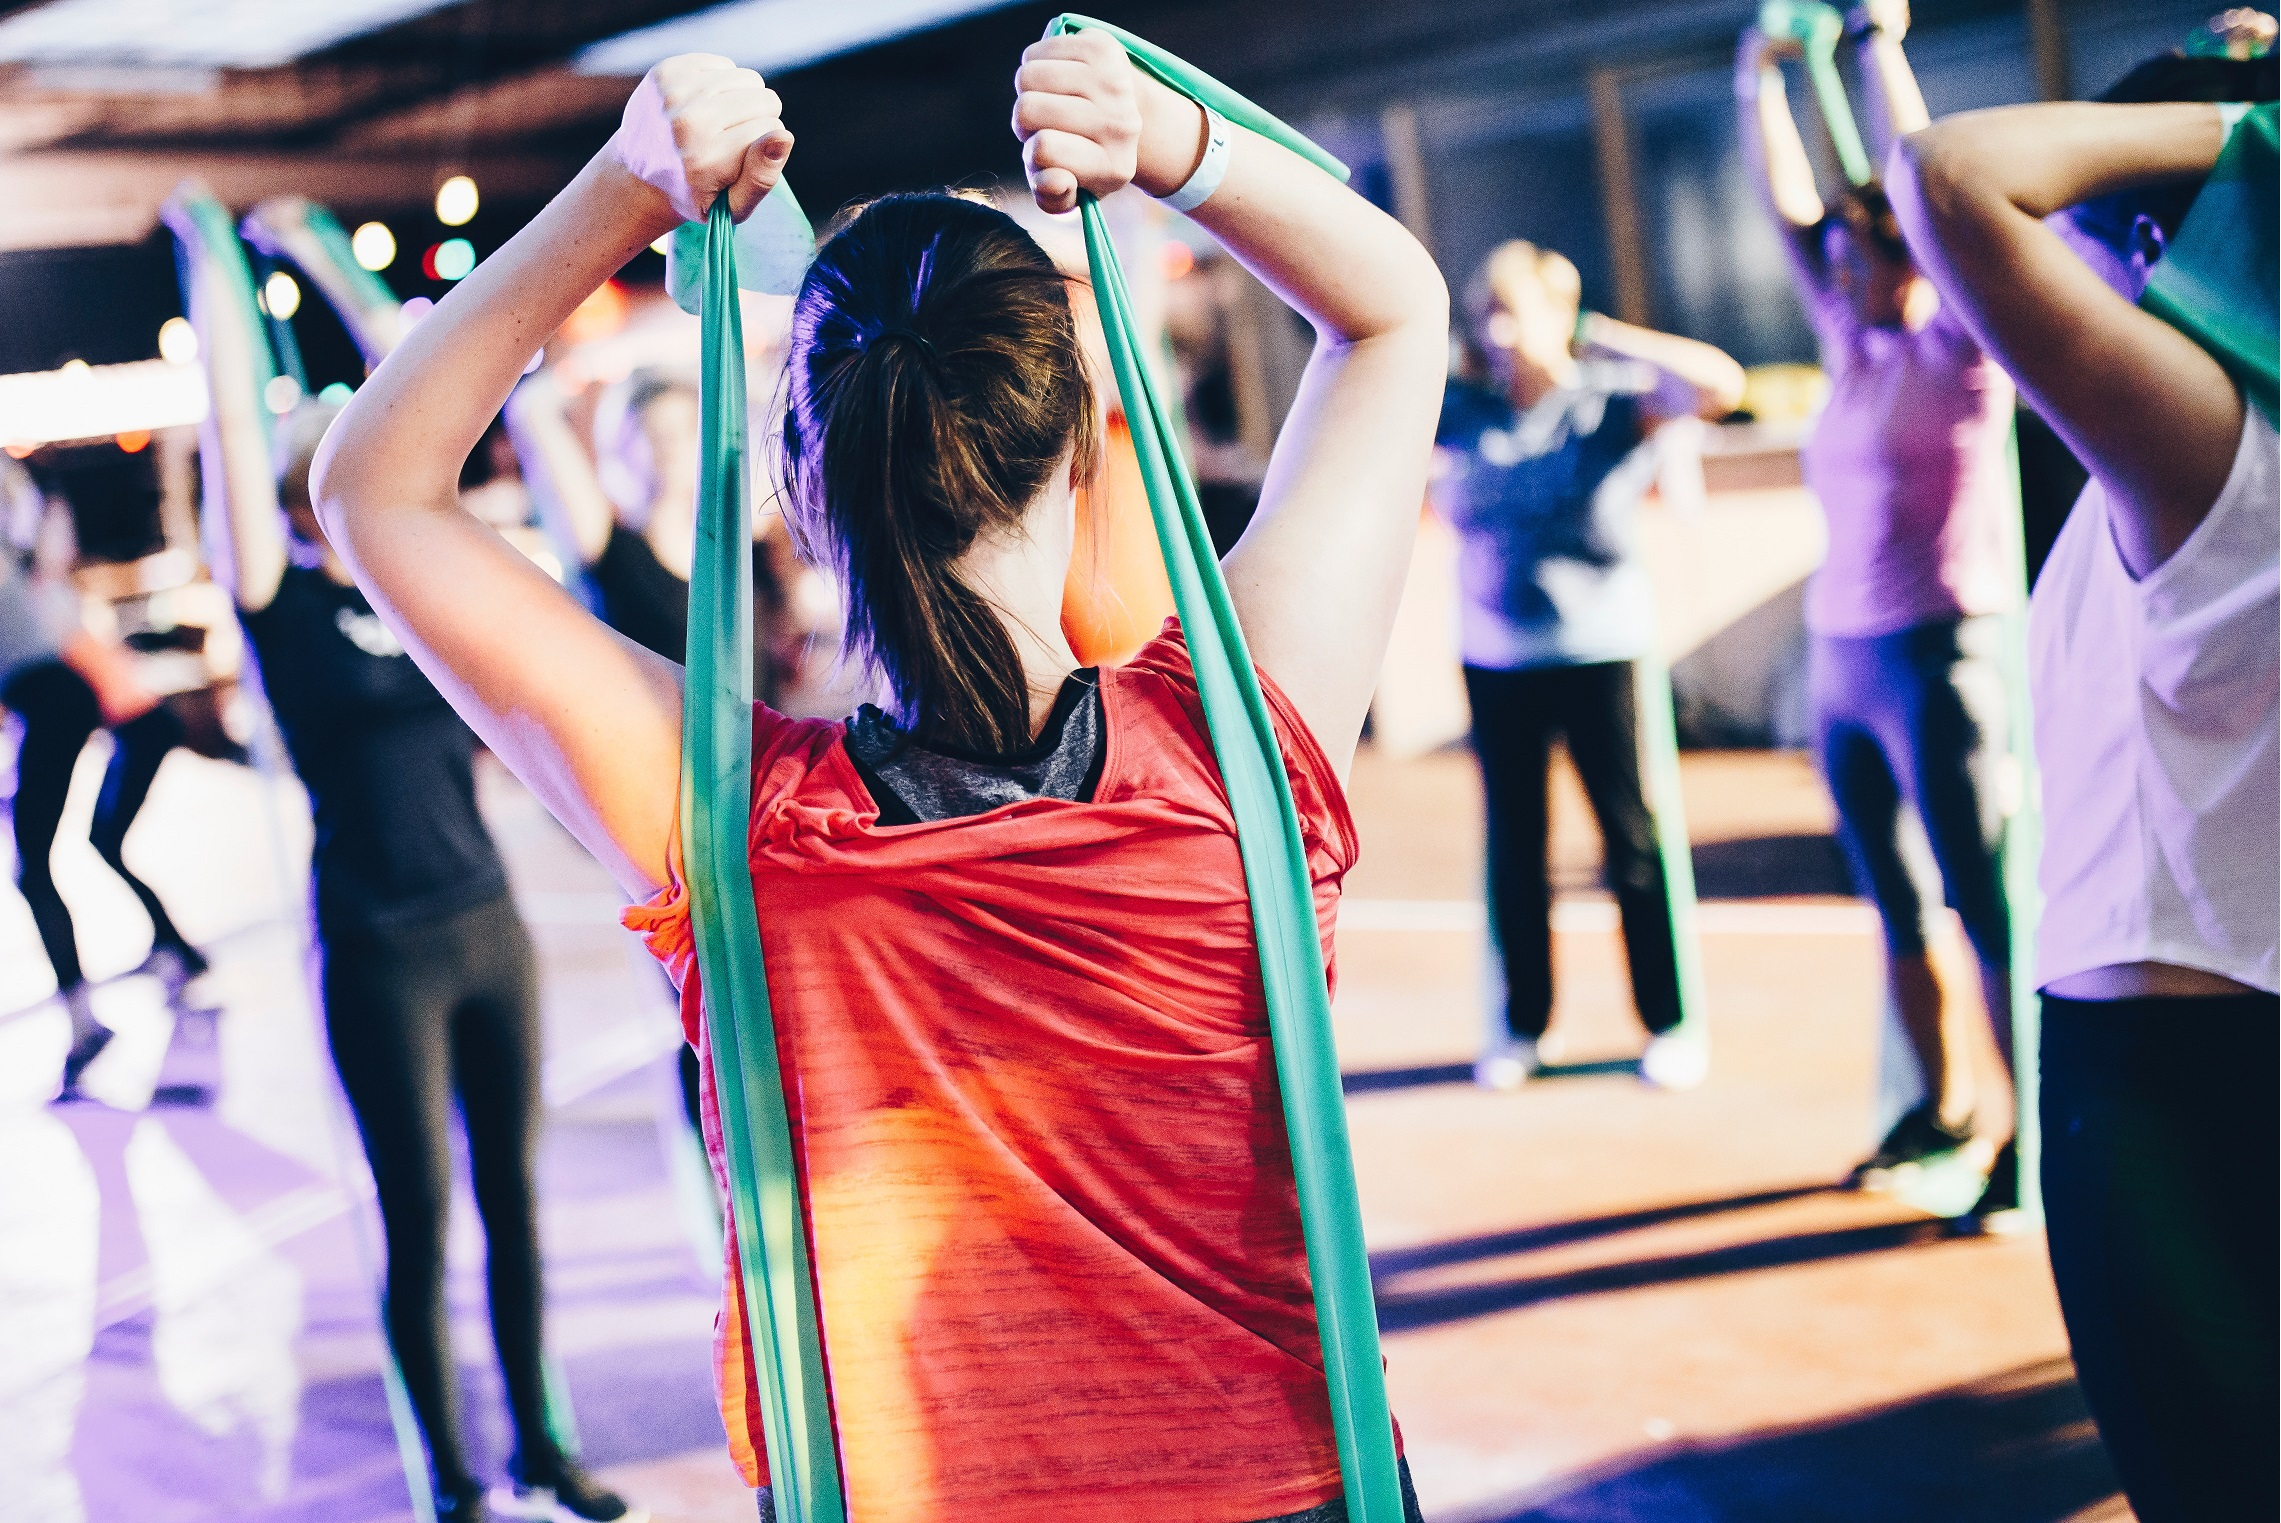 Feel the burn! Join our weekly Body Burst classes